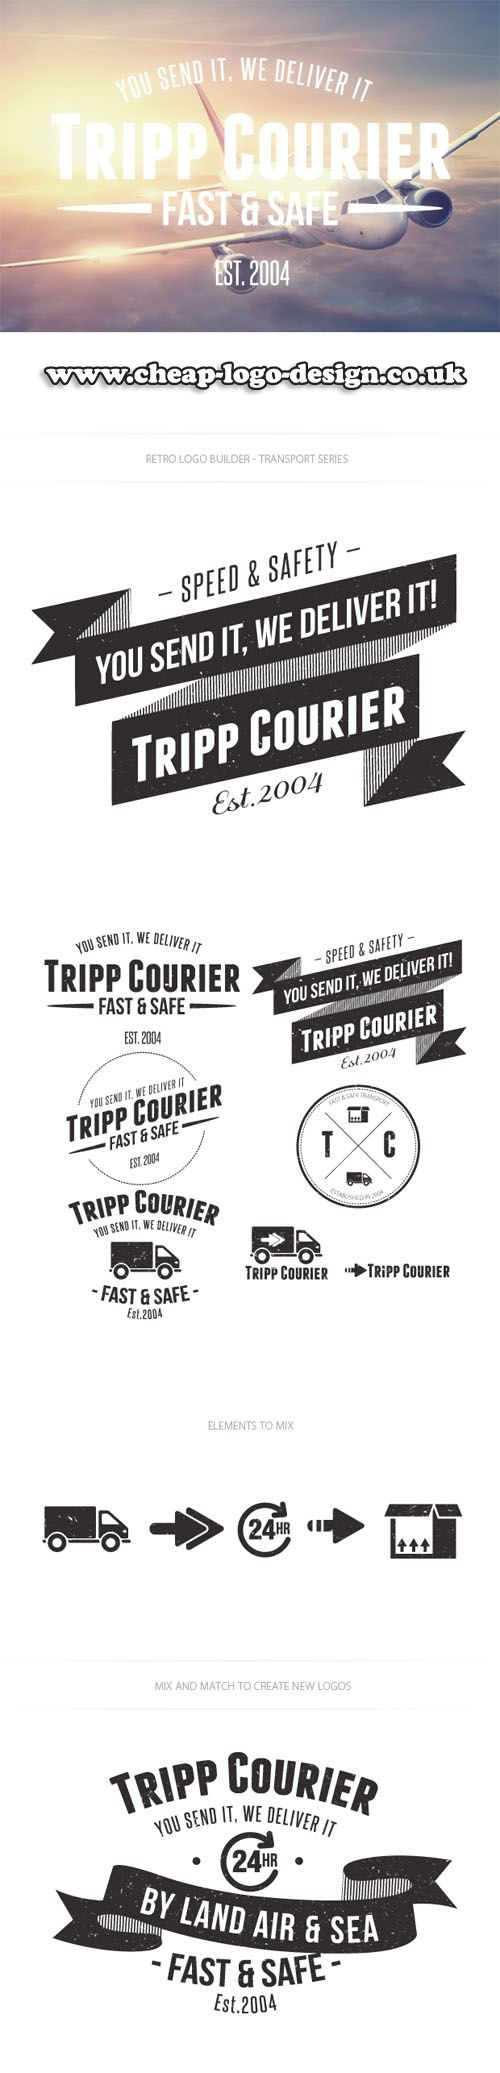 courier company logo design ideas www.cheap-logo-design.co.uk #courierlogo #logodesign #logos